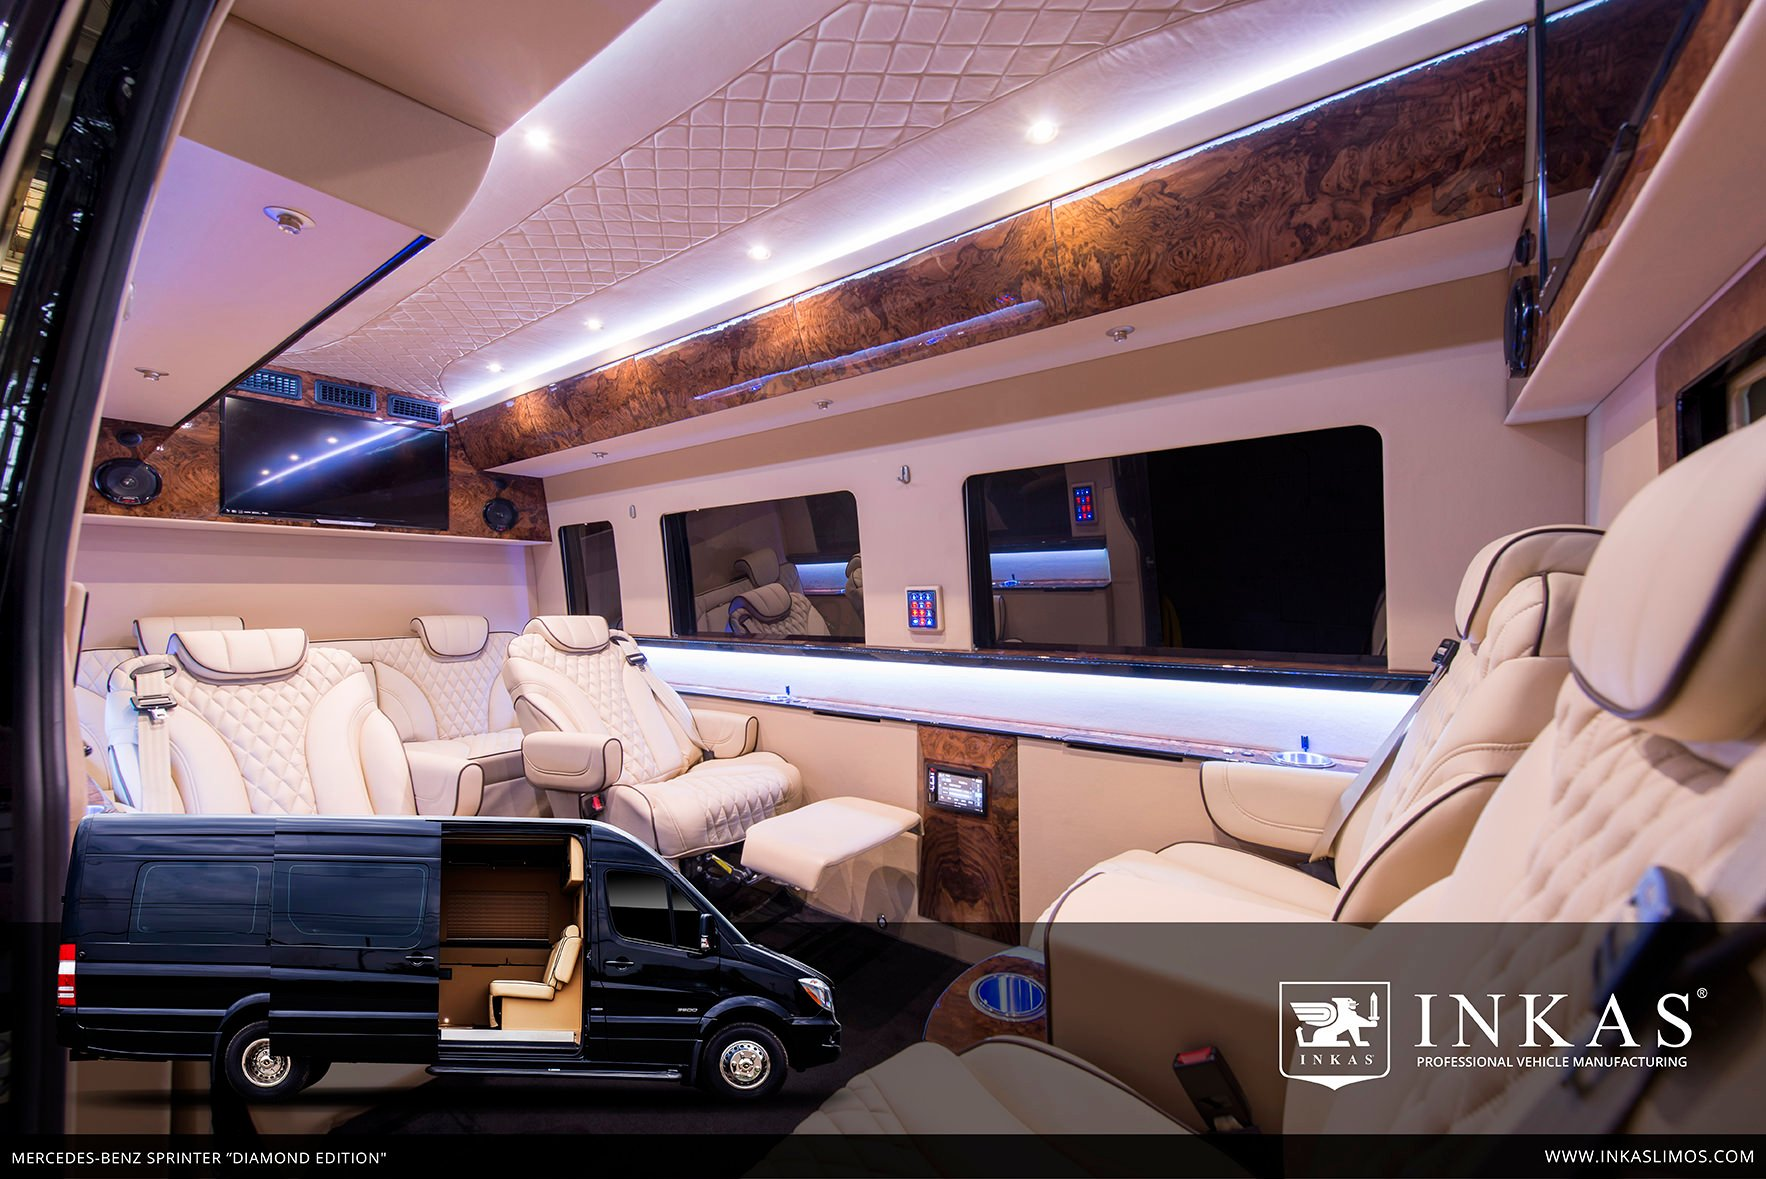 mercedes benz sprinter diamond edition by inkas inkas armored vehicles bulletproof cars. Black Bedroom Furniture Sets. Home Design Ideas